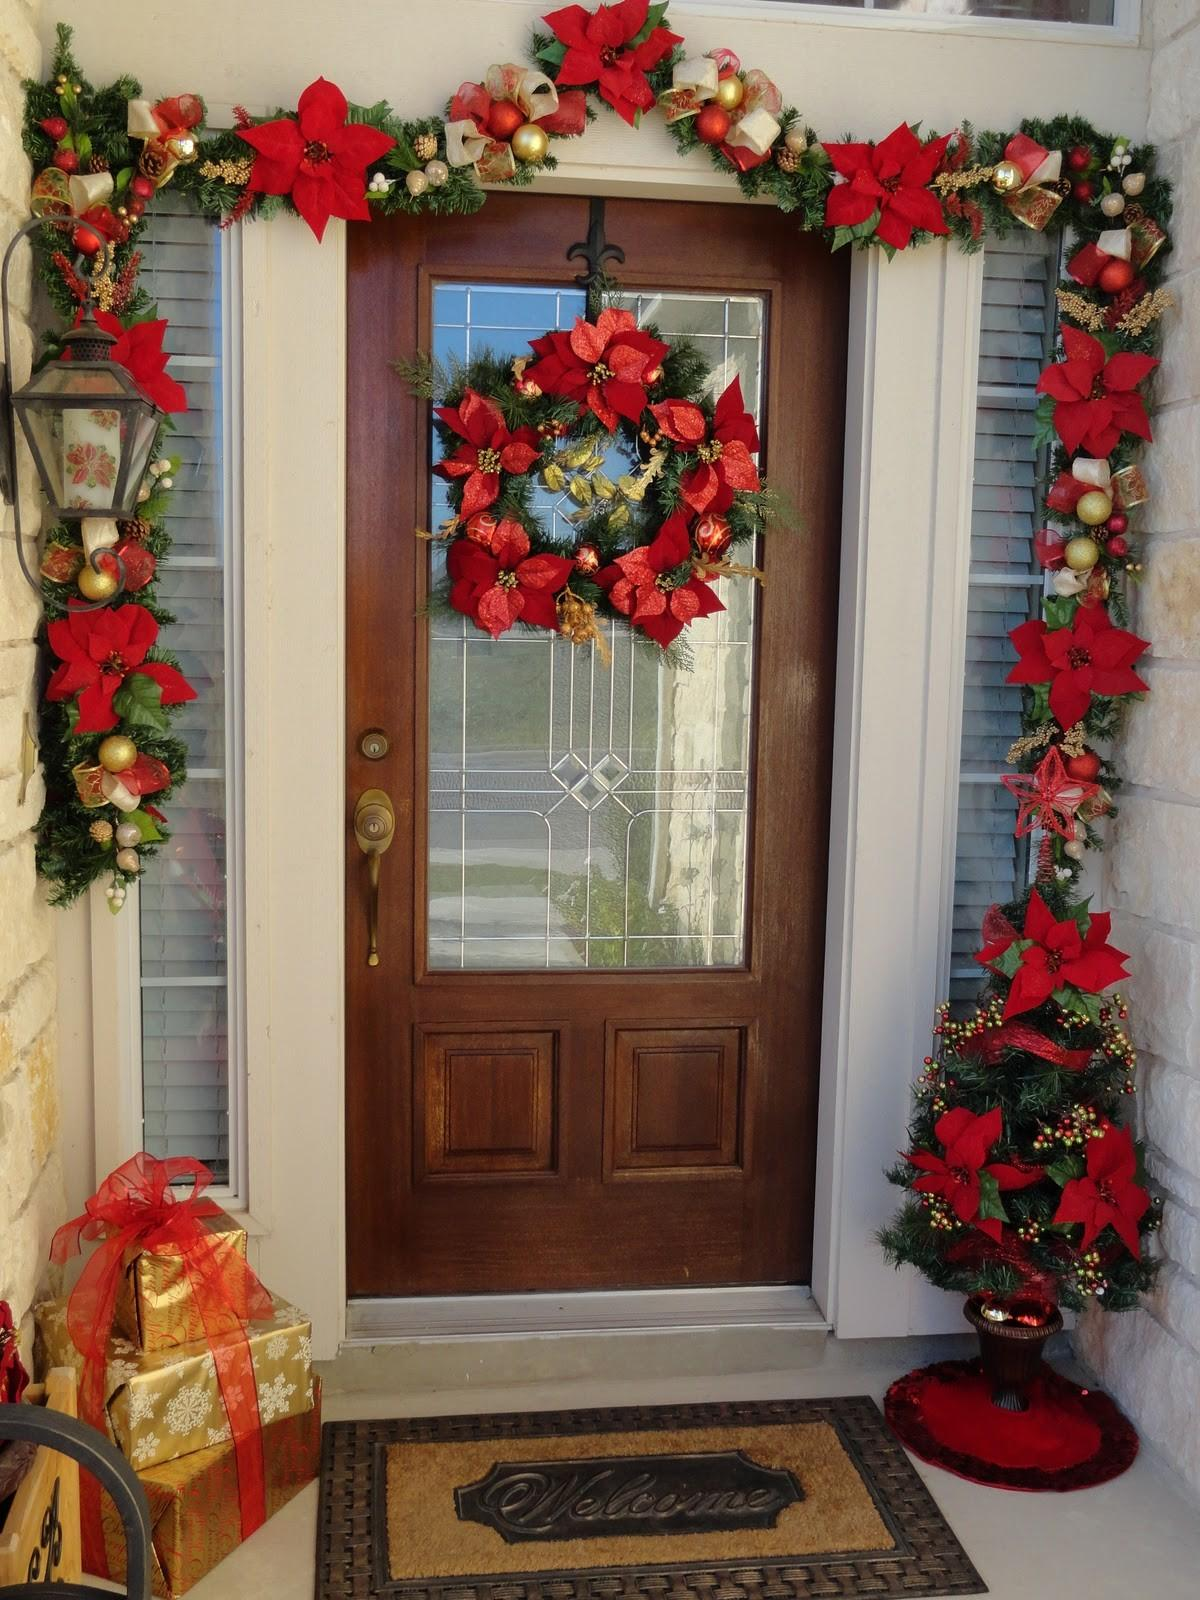 Our Home Away Front Door Christmas Decor